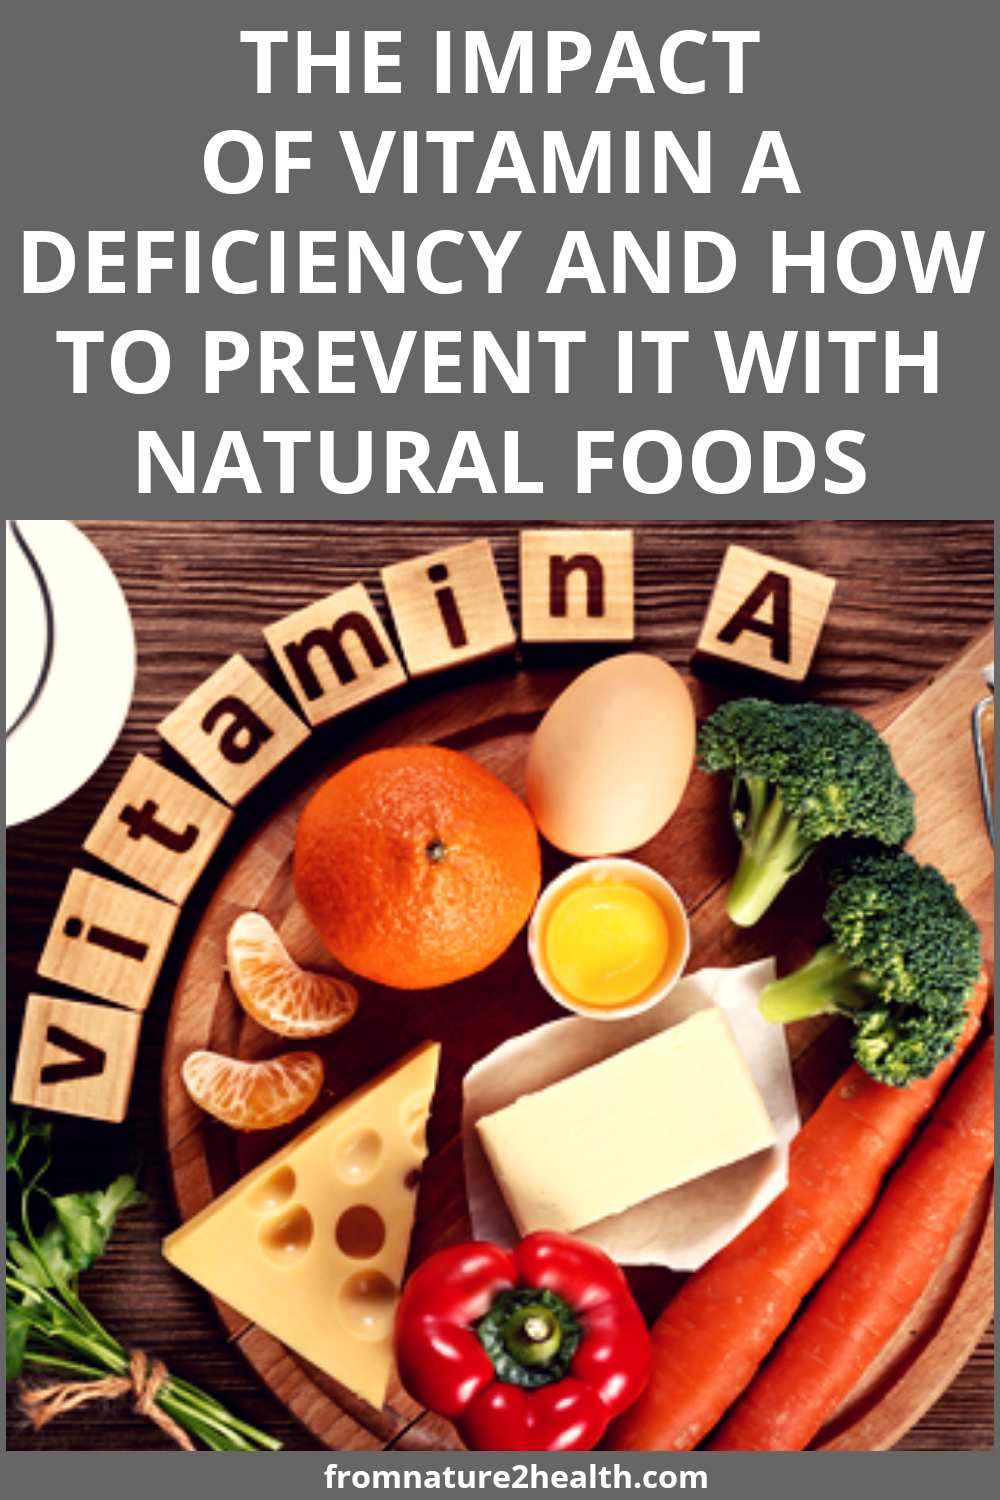 The Impact of Vitamin A Deficiency and How to Prevent It with Natural Foods